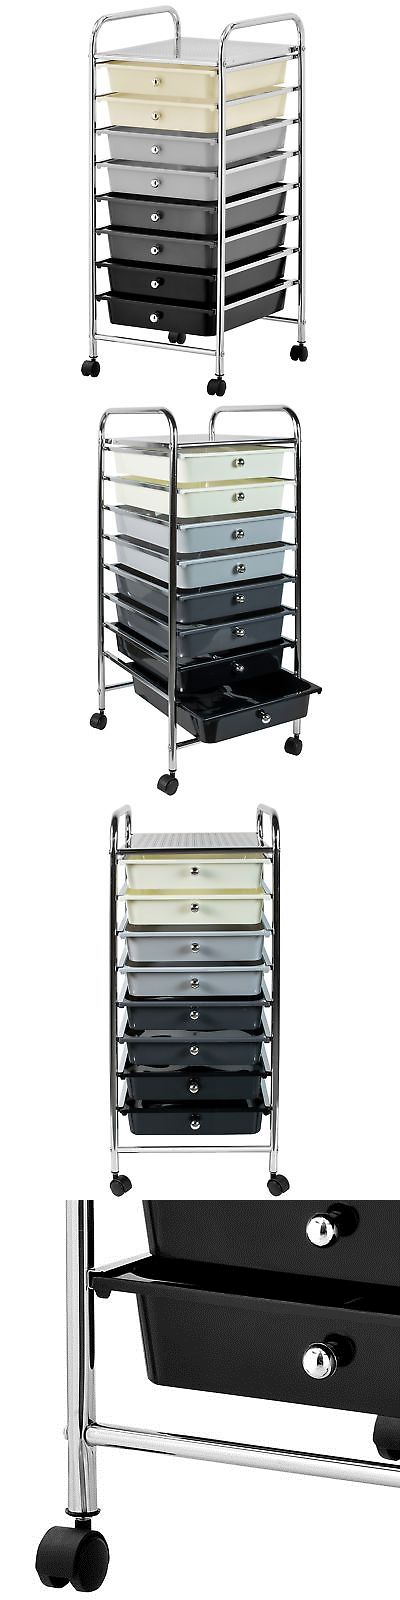 Craft Carts 146400 8 Drawer Rolling Trolley Storage Organizer Mobile Office Supply Cart With Pul It Now Only 60 09 On Ebay